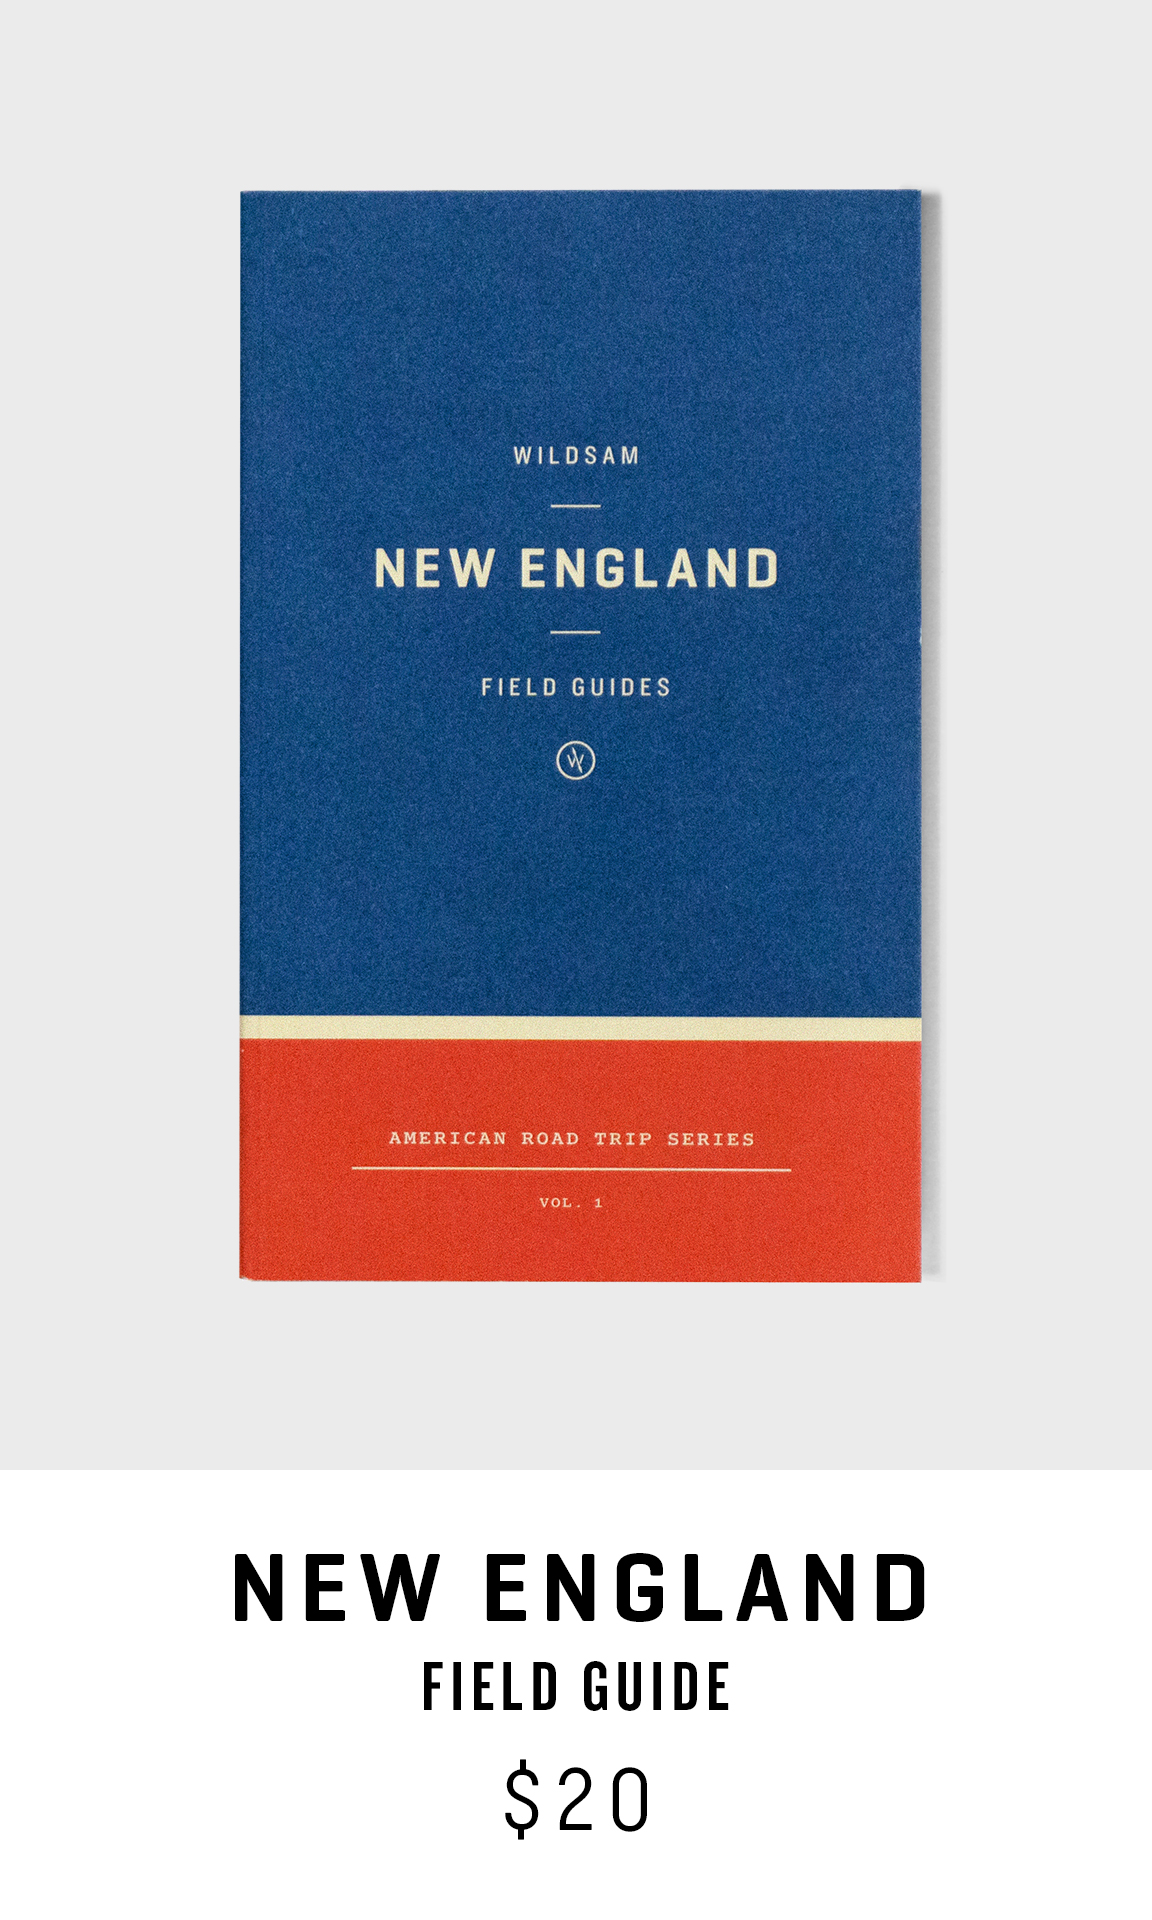 New_England-Product-CARD.jpg